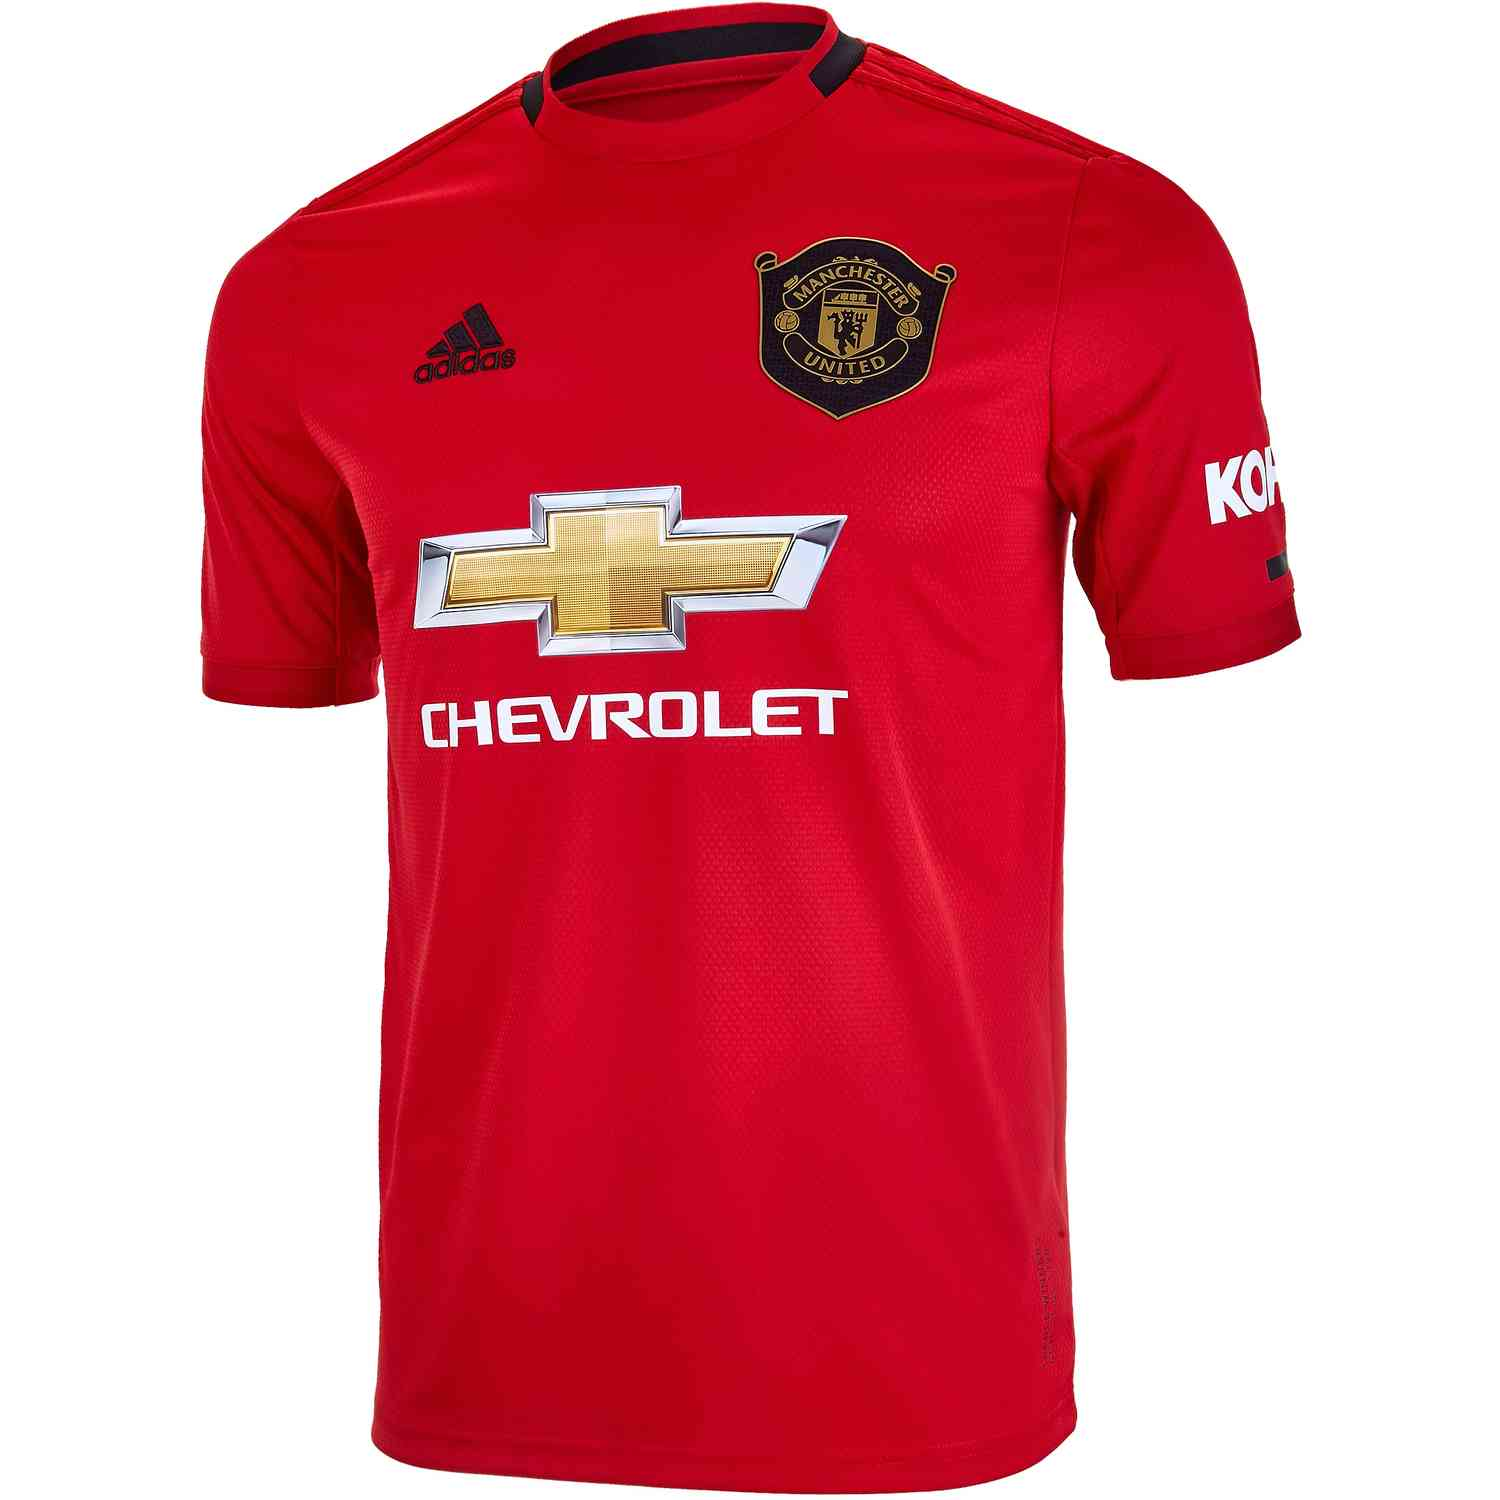 2019/20 Kids adidas Manchester United Home Jersey - SoccerPro